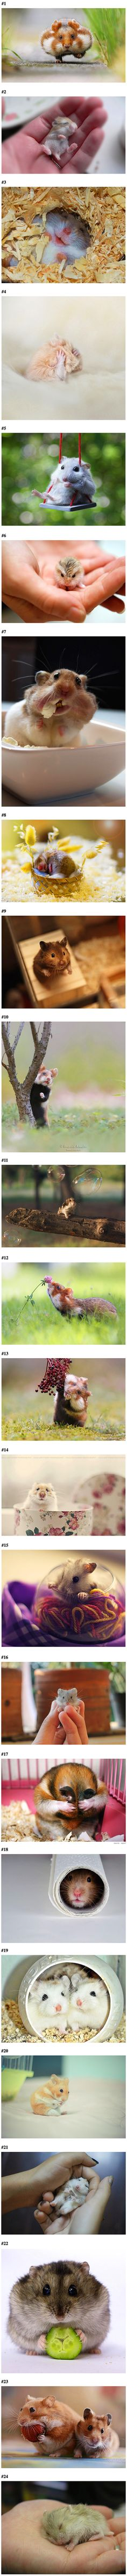 Photographers capture 20 images that show the cutest hamster pics! Super Cute Animals, Cute Little Animals, Cute Funny Animals, Funny Animal Pictures, Cute Pictures, Animal Pics, Cute Creatures, Beautiful Creatures, Animals Beautiful